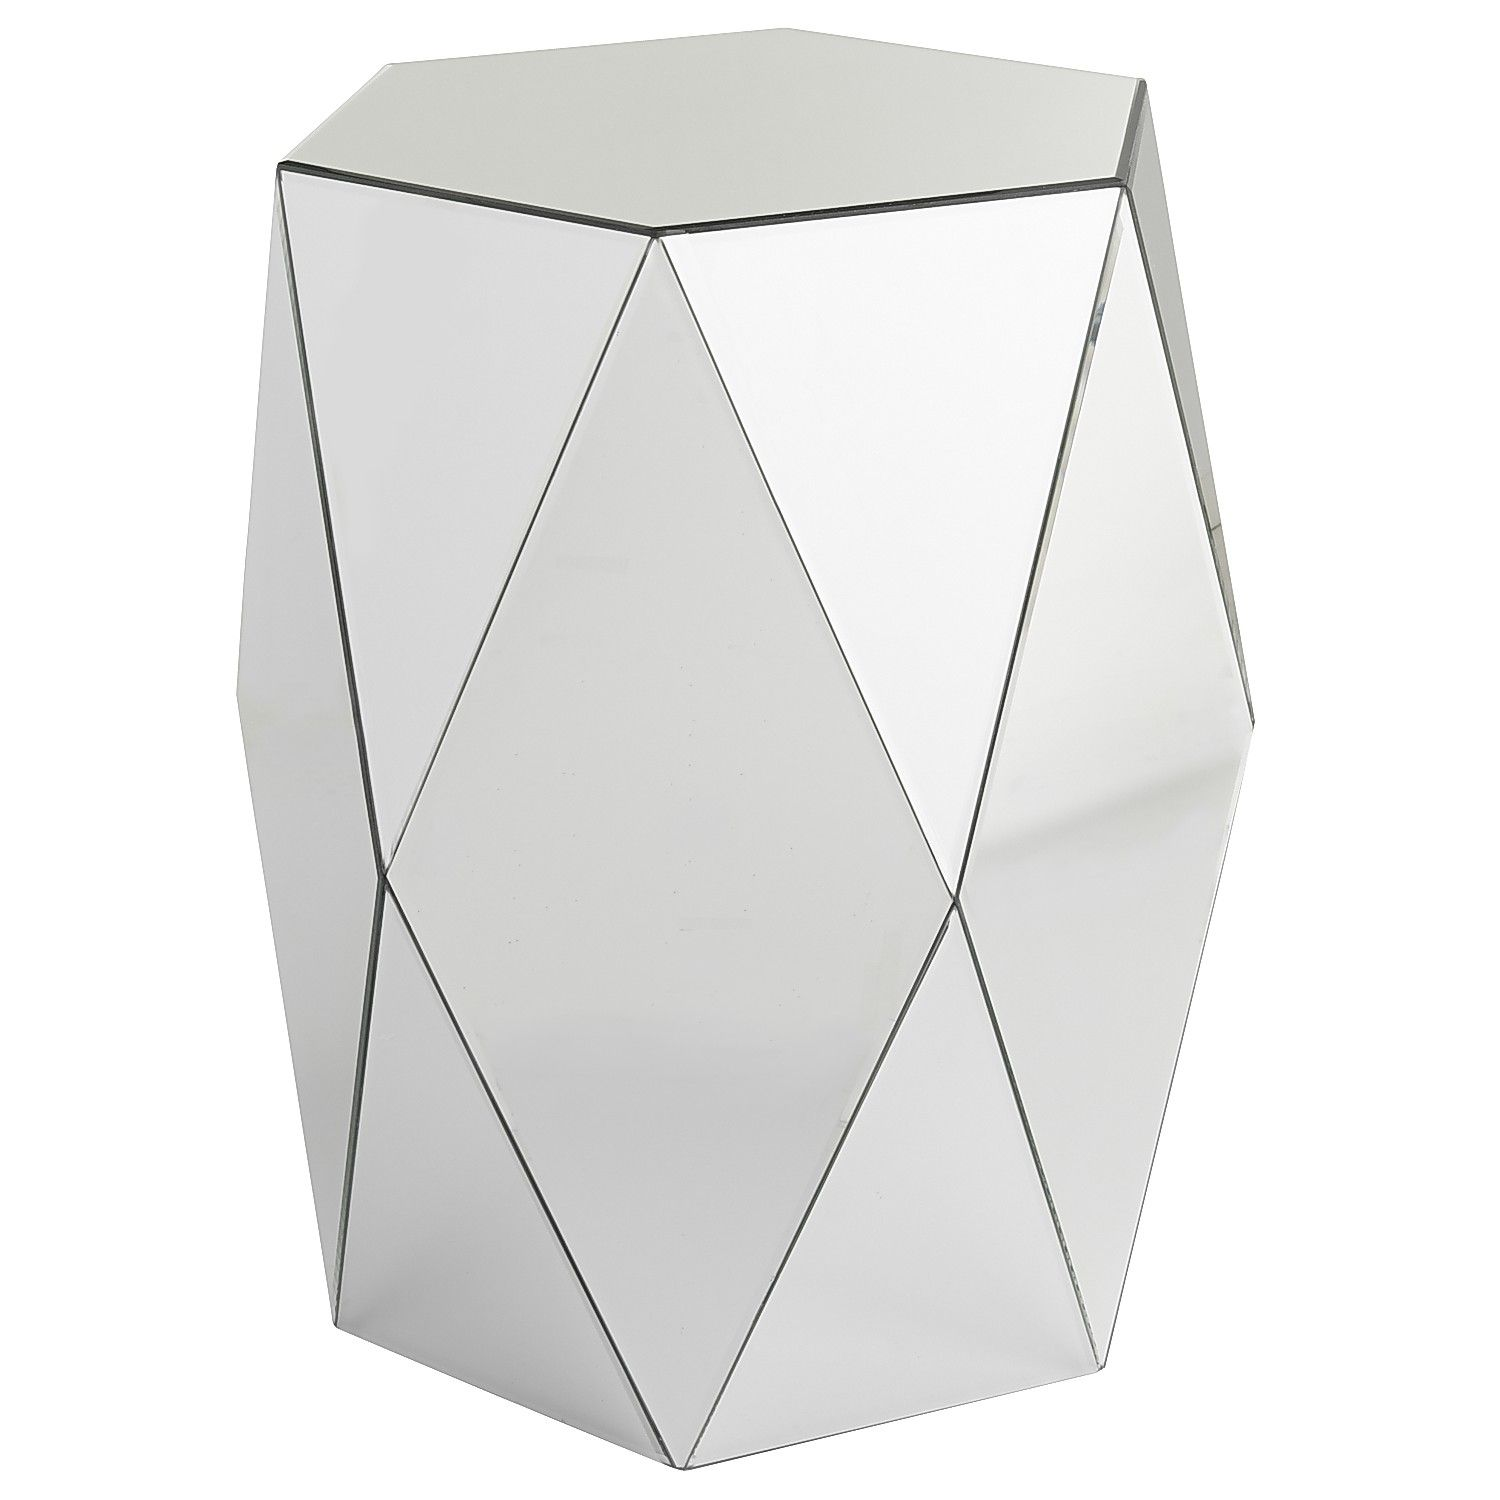 miera diamond mirrored drum accent table tables white outdoor metal ashley furniture set shelving concrete homeware decor barn door closet doors small triangle kartell chairs